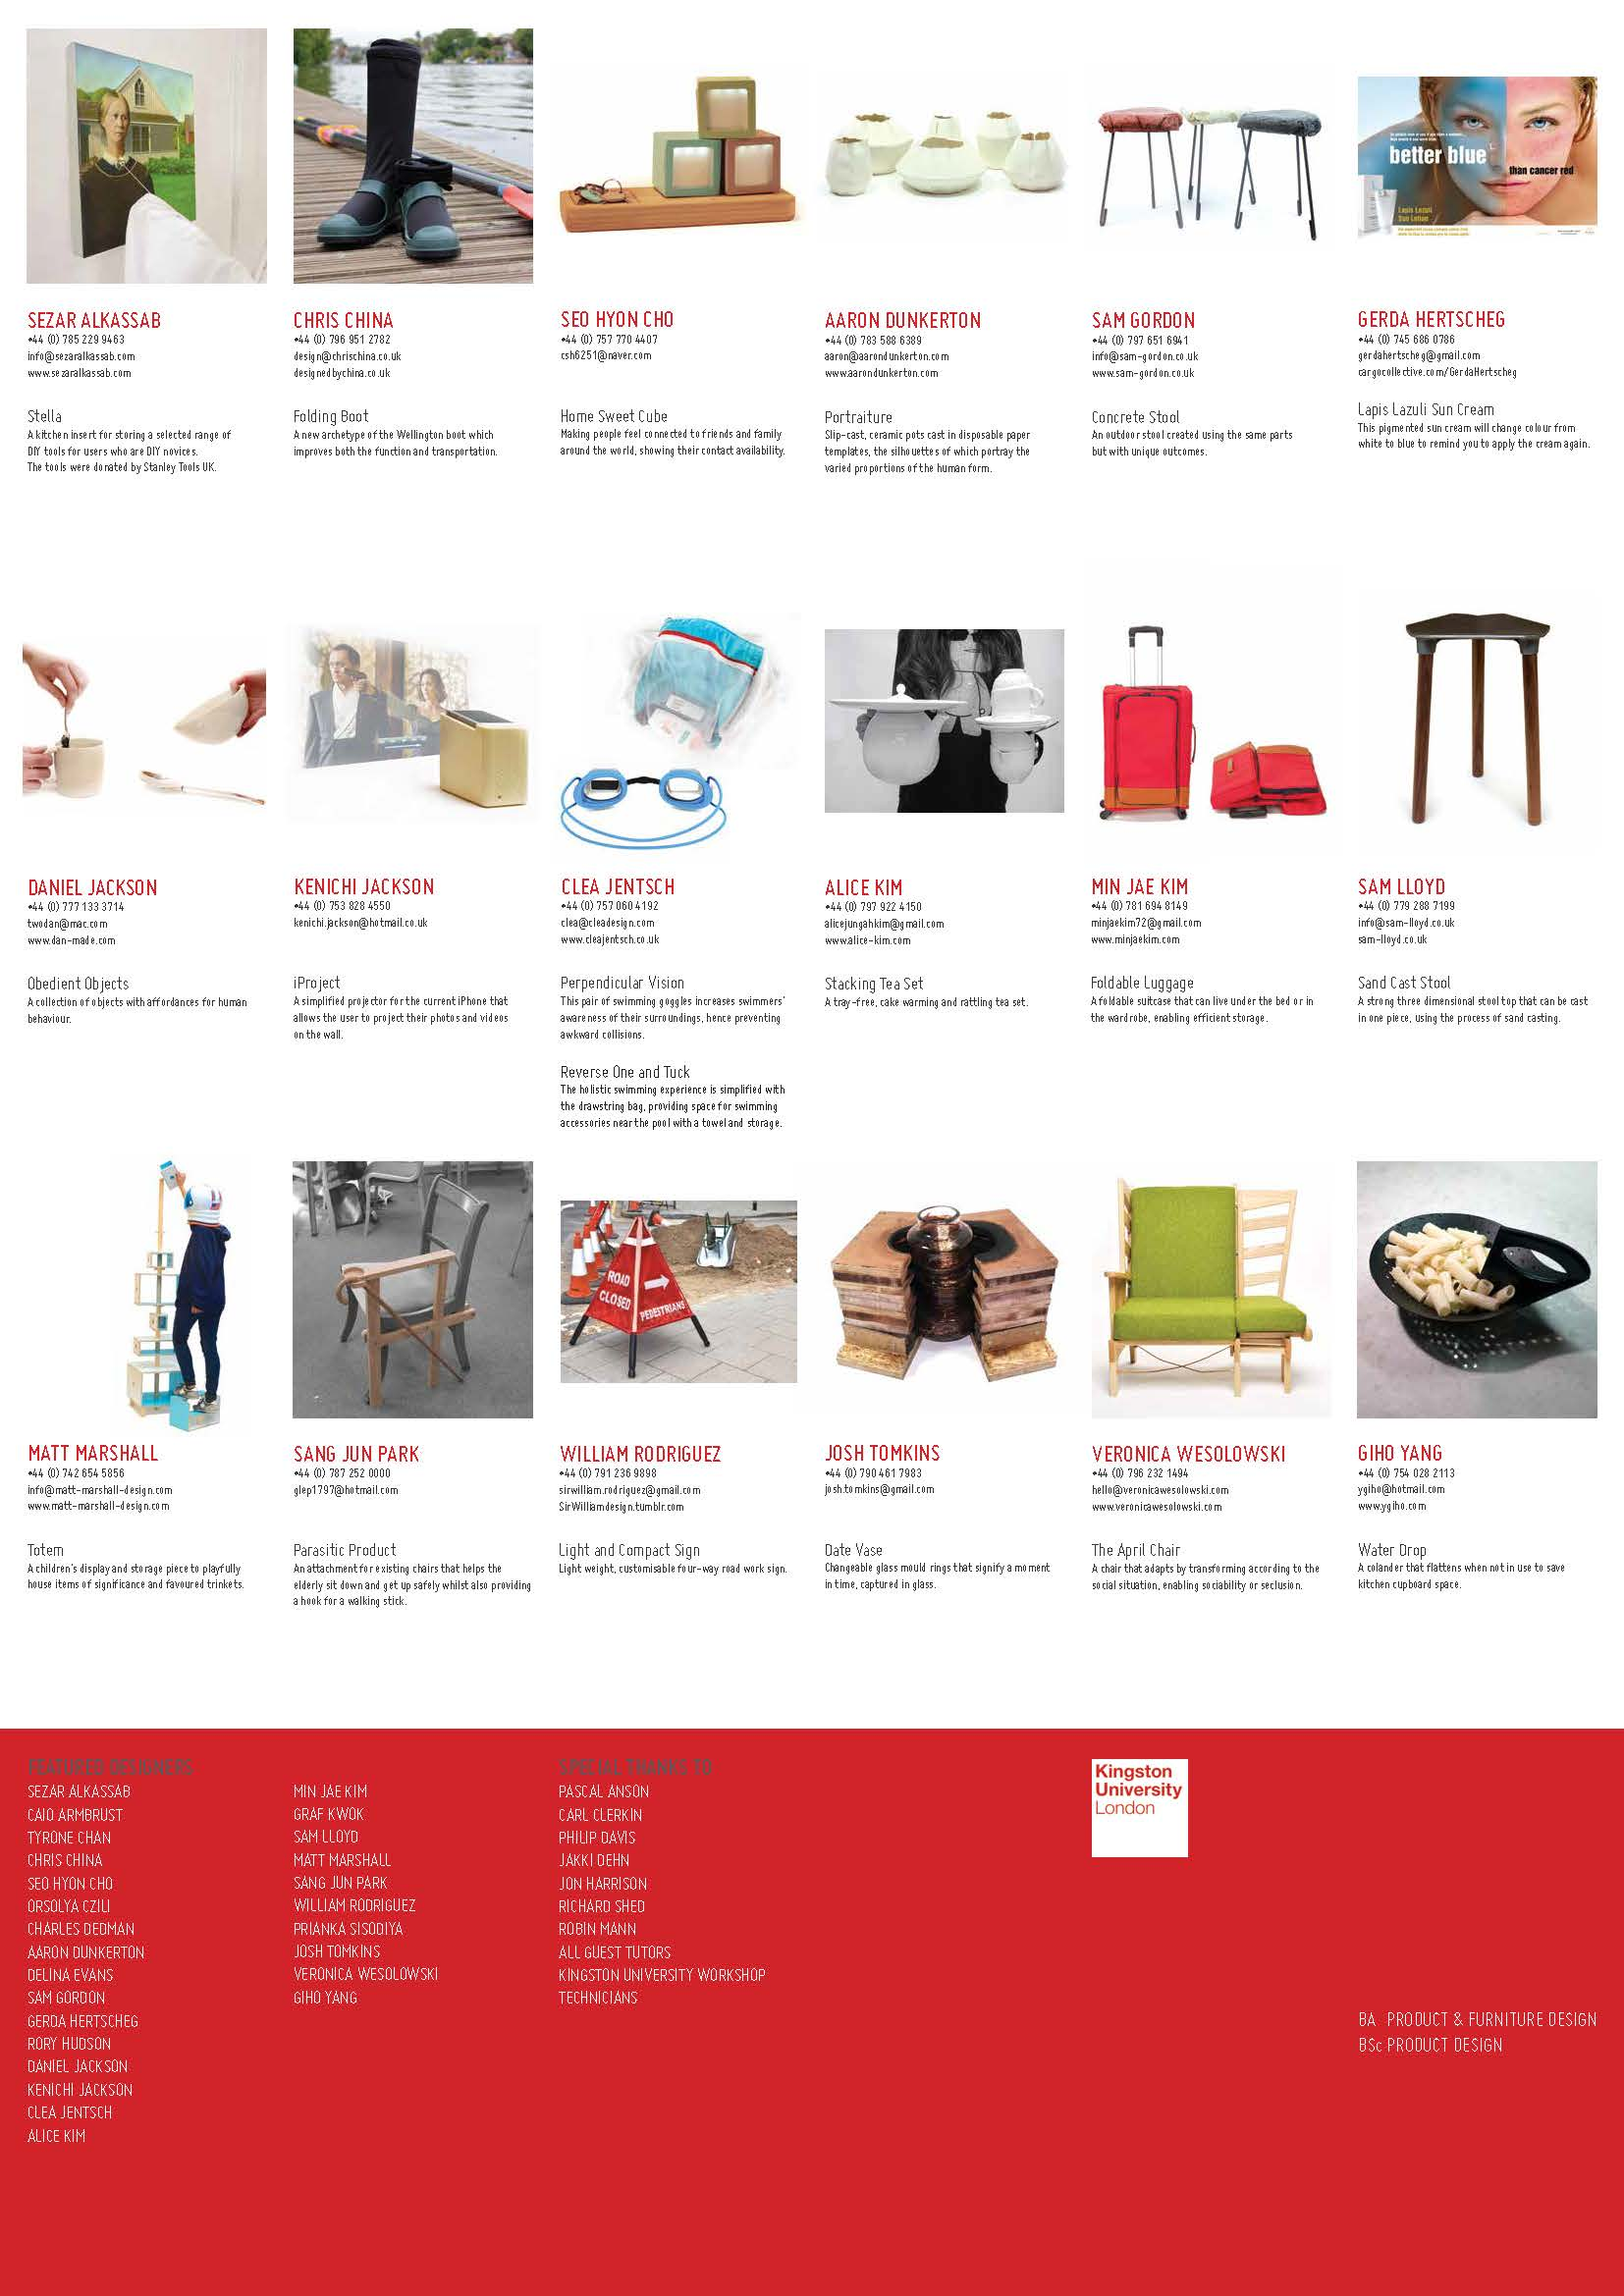 ProductFurniture_poster_marketing_PROOF_Page_1.jpg